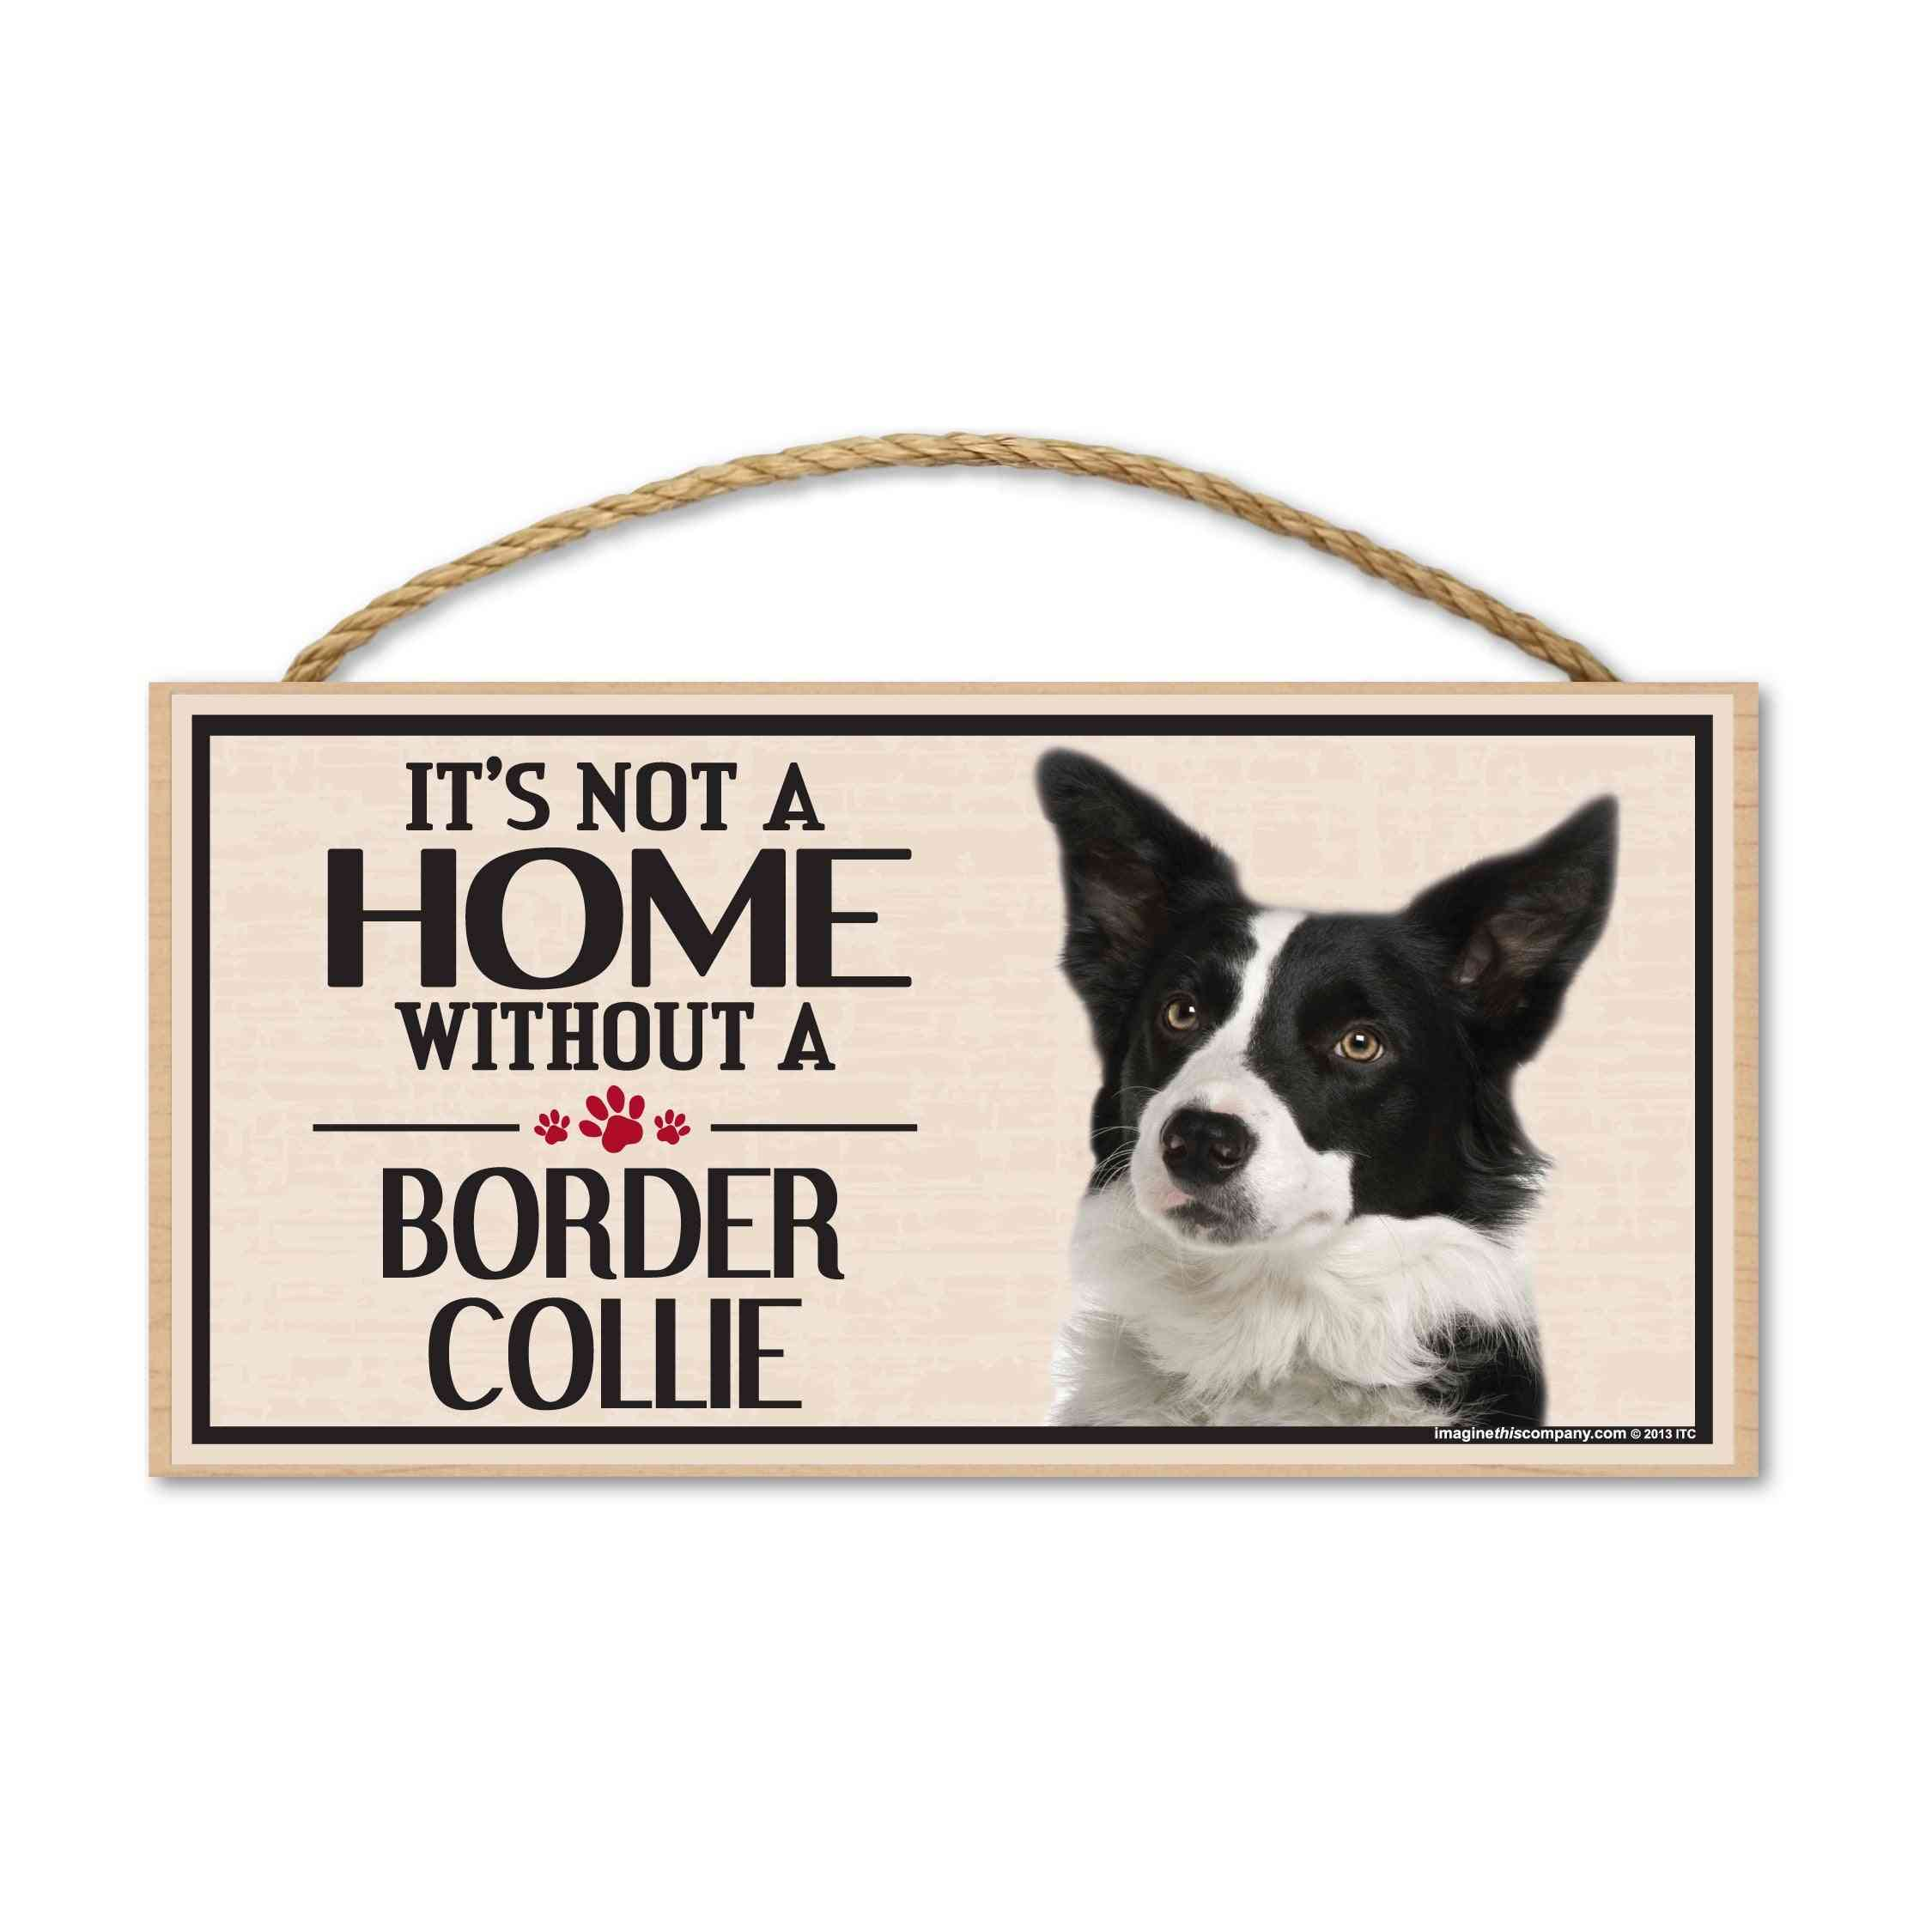 Sign, Wood, It's Not A Home Without A Border Collie, 10